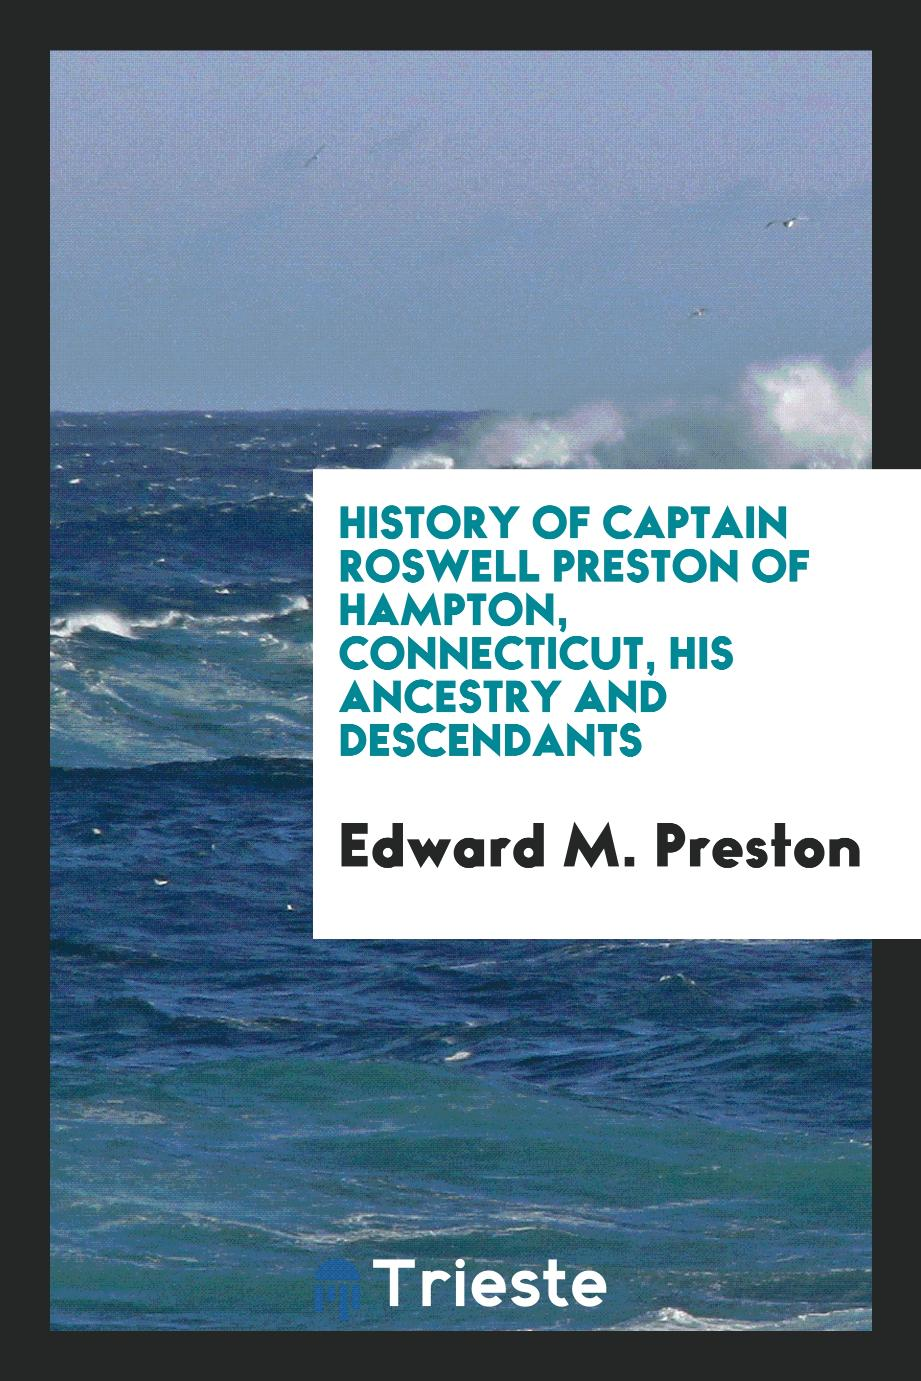 History of Captain Roswell Preston of Hampton, Connecticut, His Ancestry and Descendants